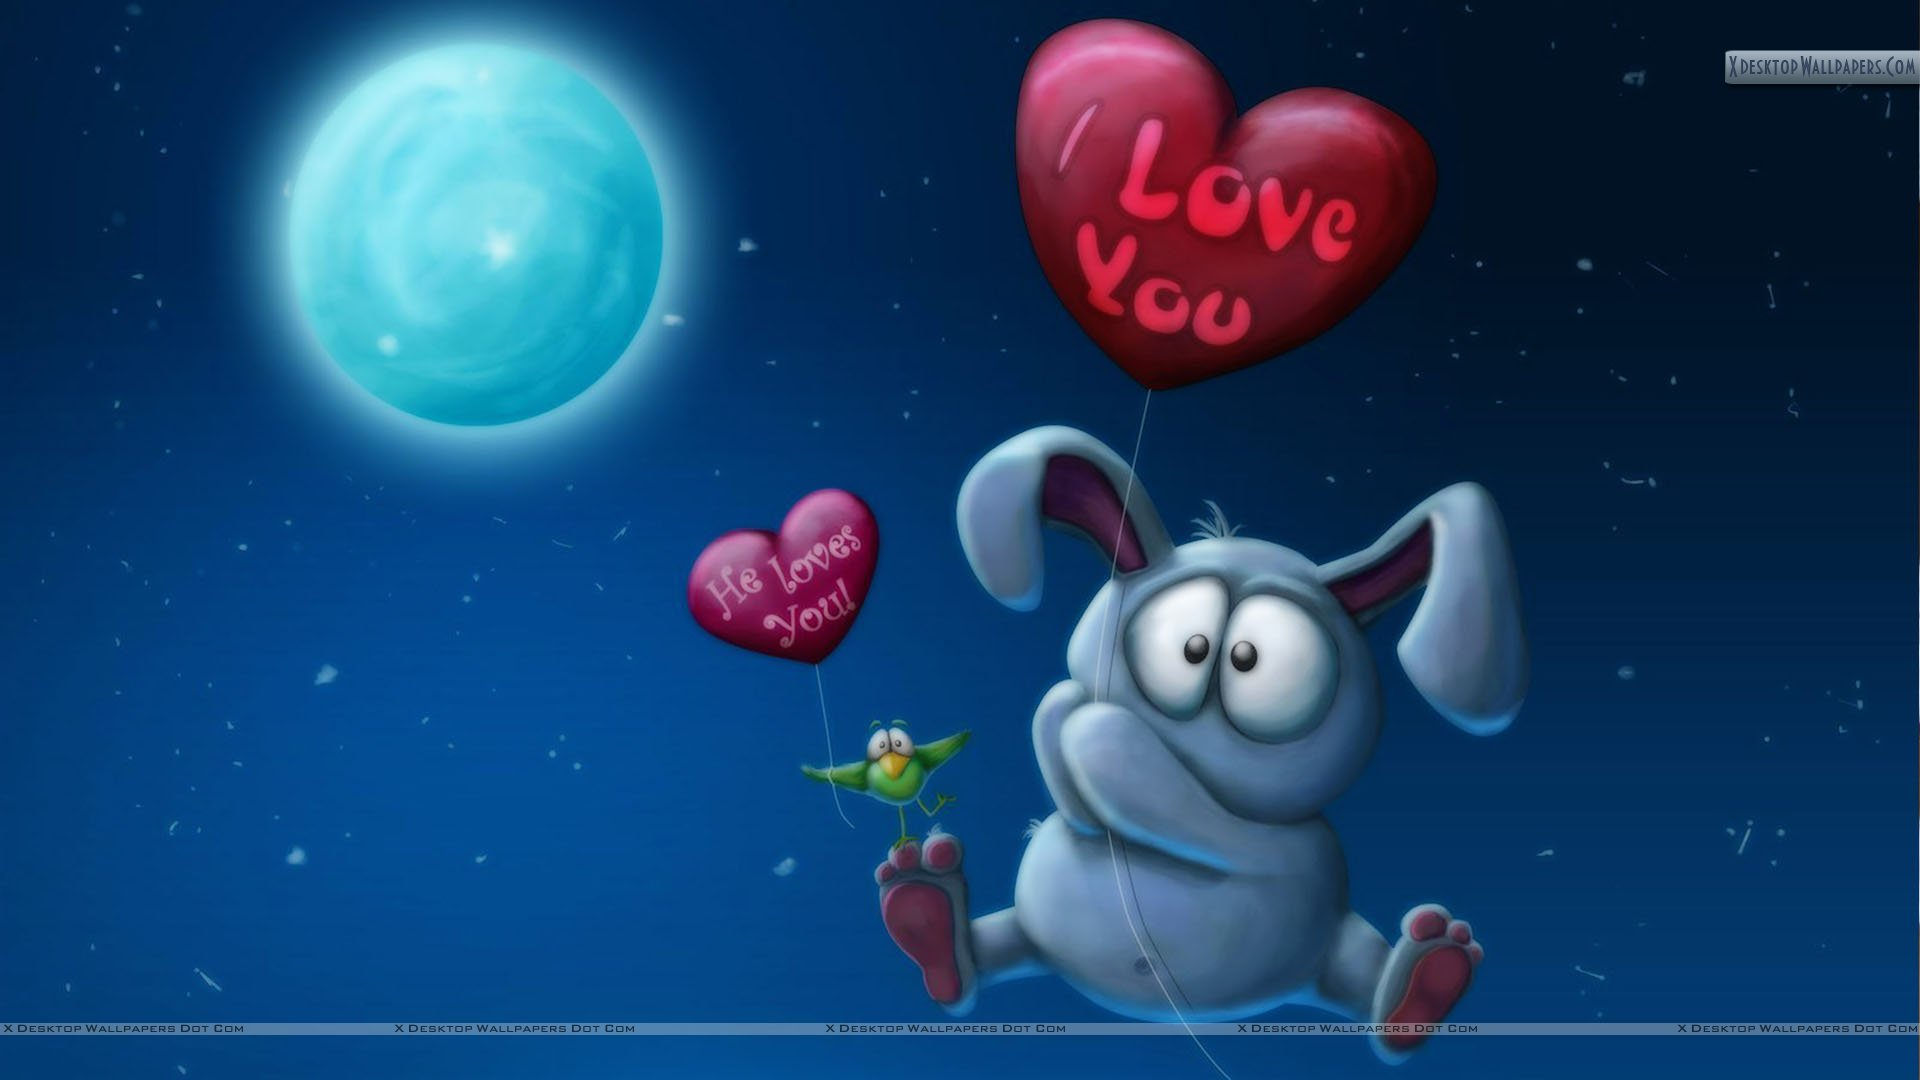 Lovely Love Desktop Wallpaper : Lovely wallpaper - 297480